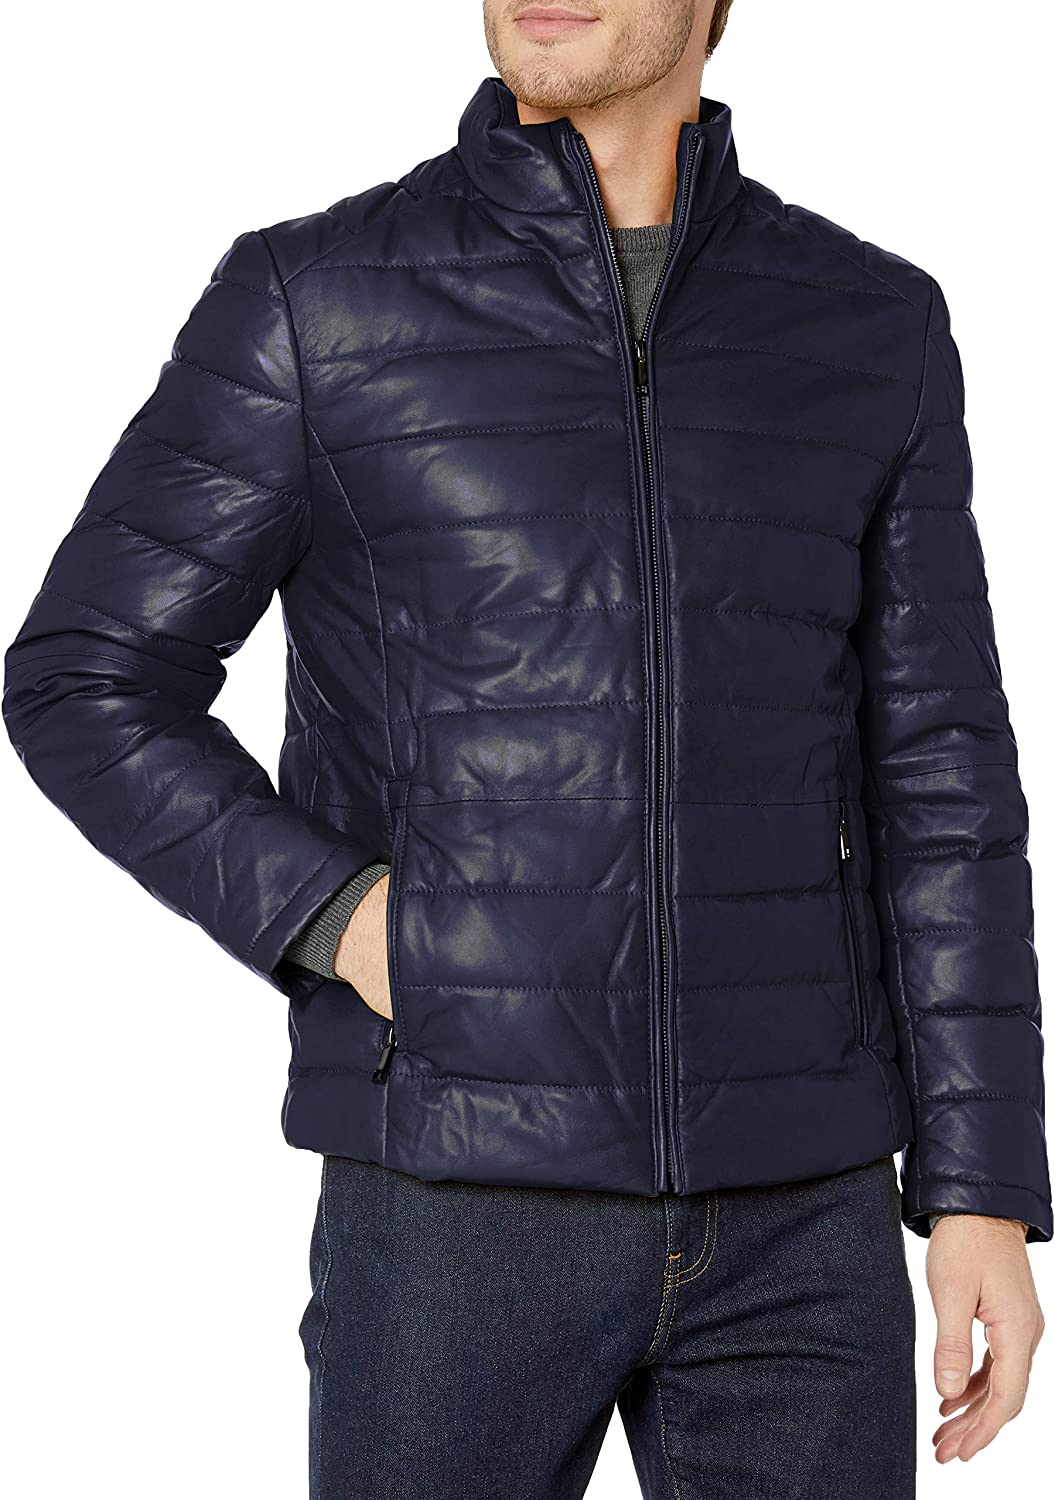 Campaign Black Men's Leather Packable Down Filled Puffer Jacket